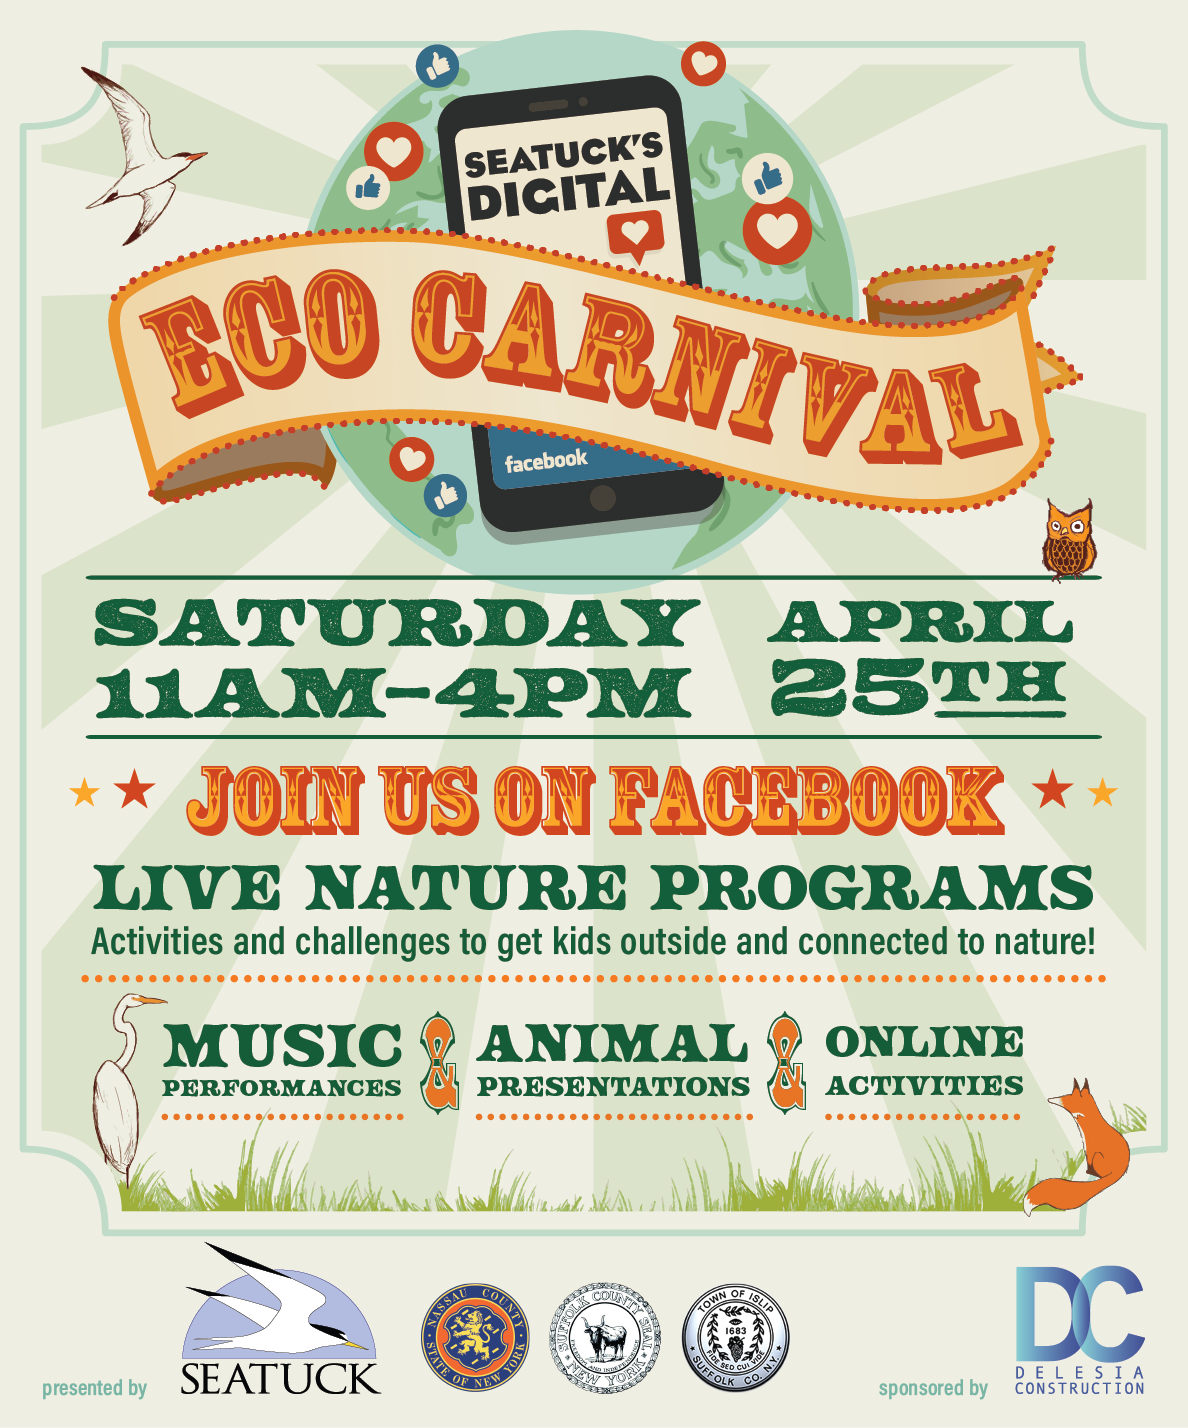 A flyer announcing the digital eco carnival event with musical performances, animal presentations and online activites for kids